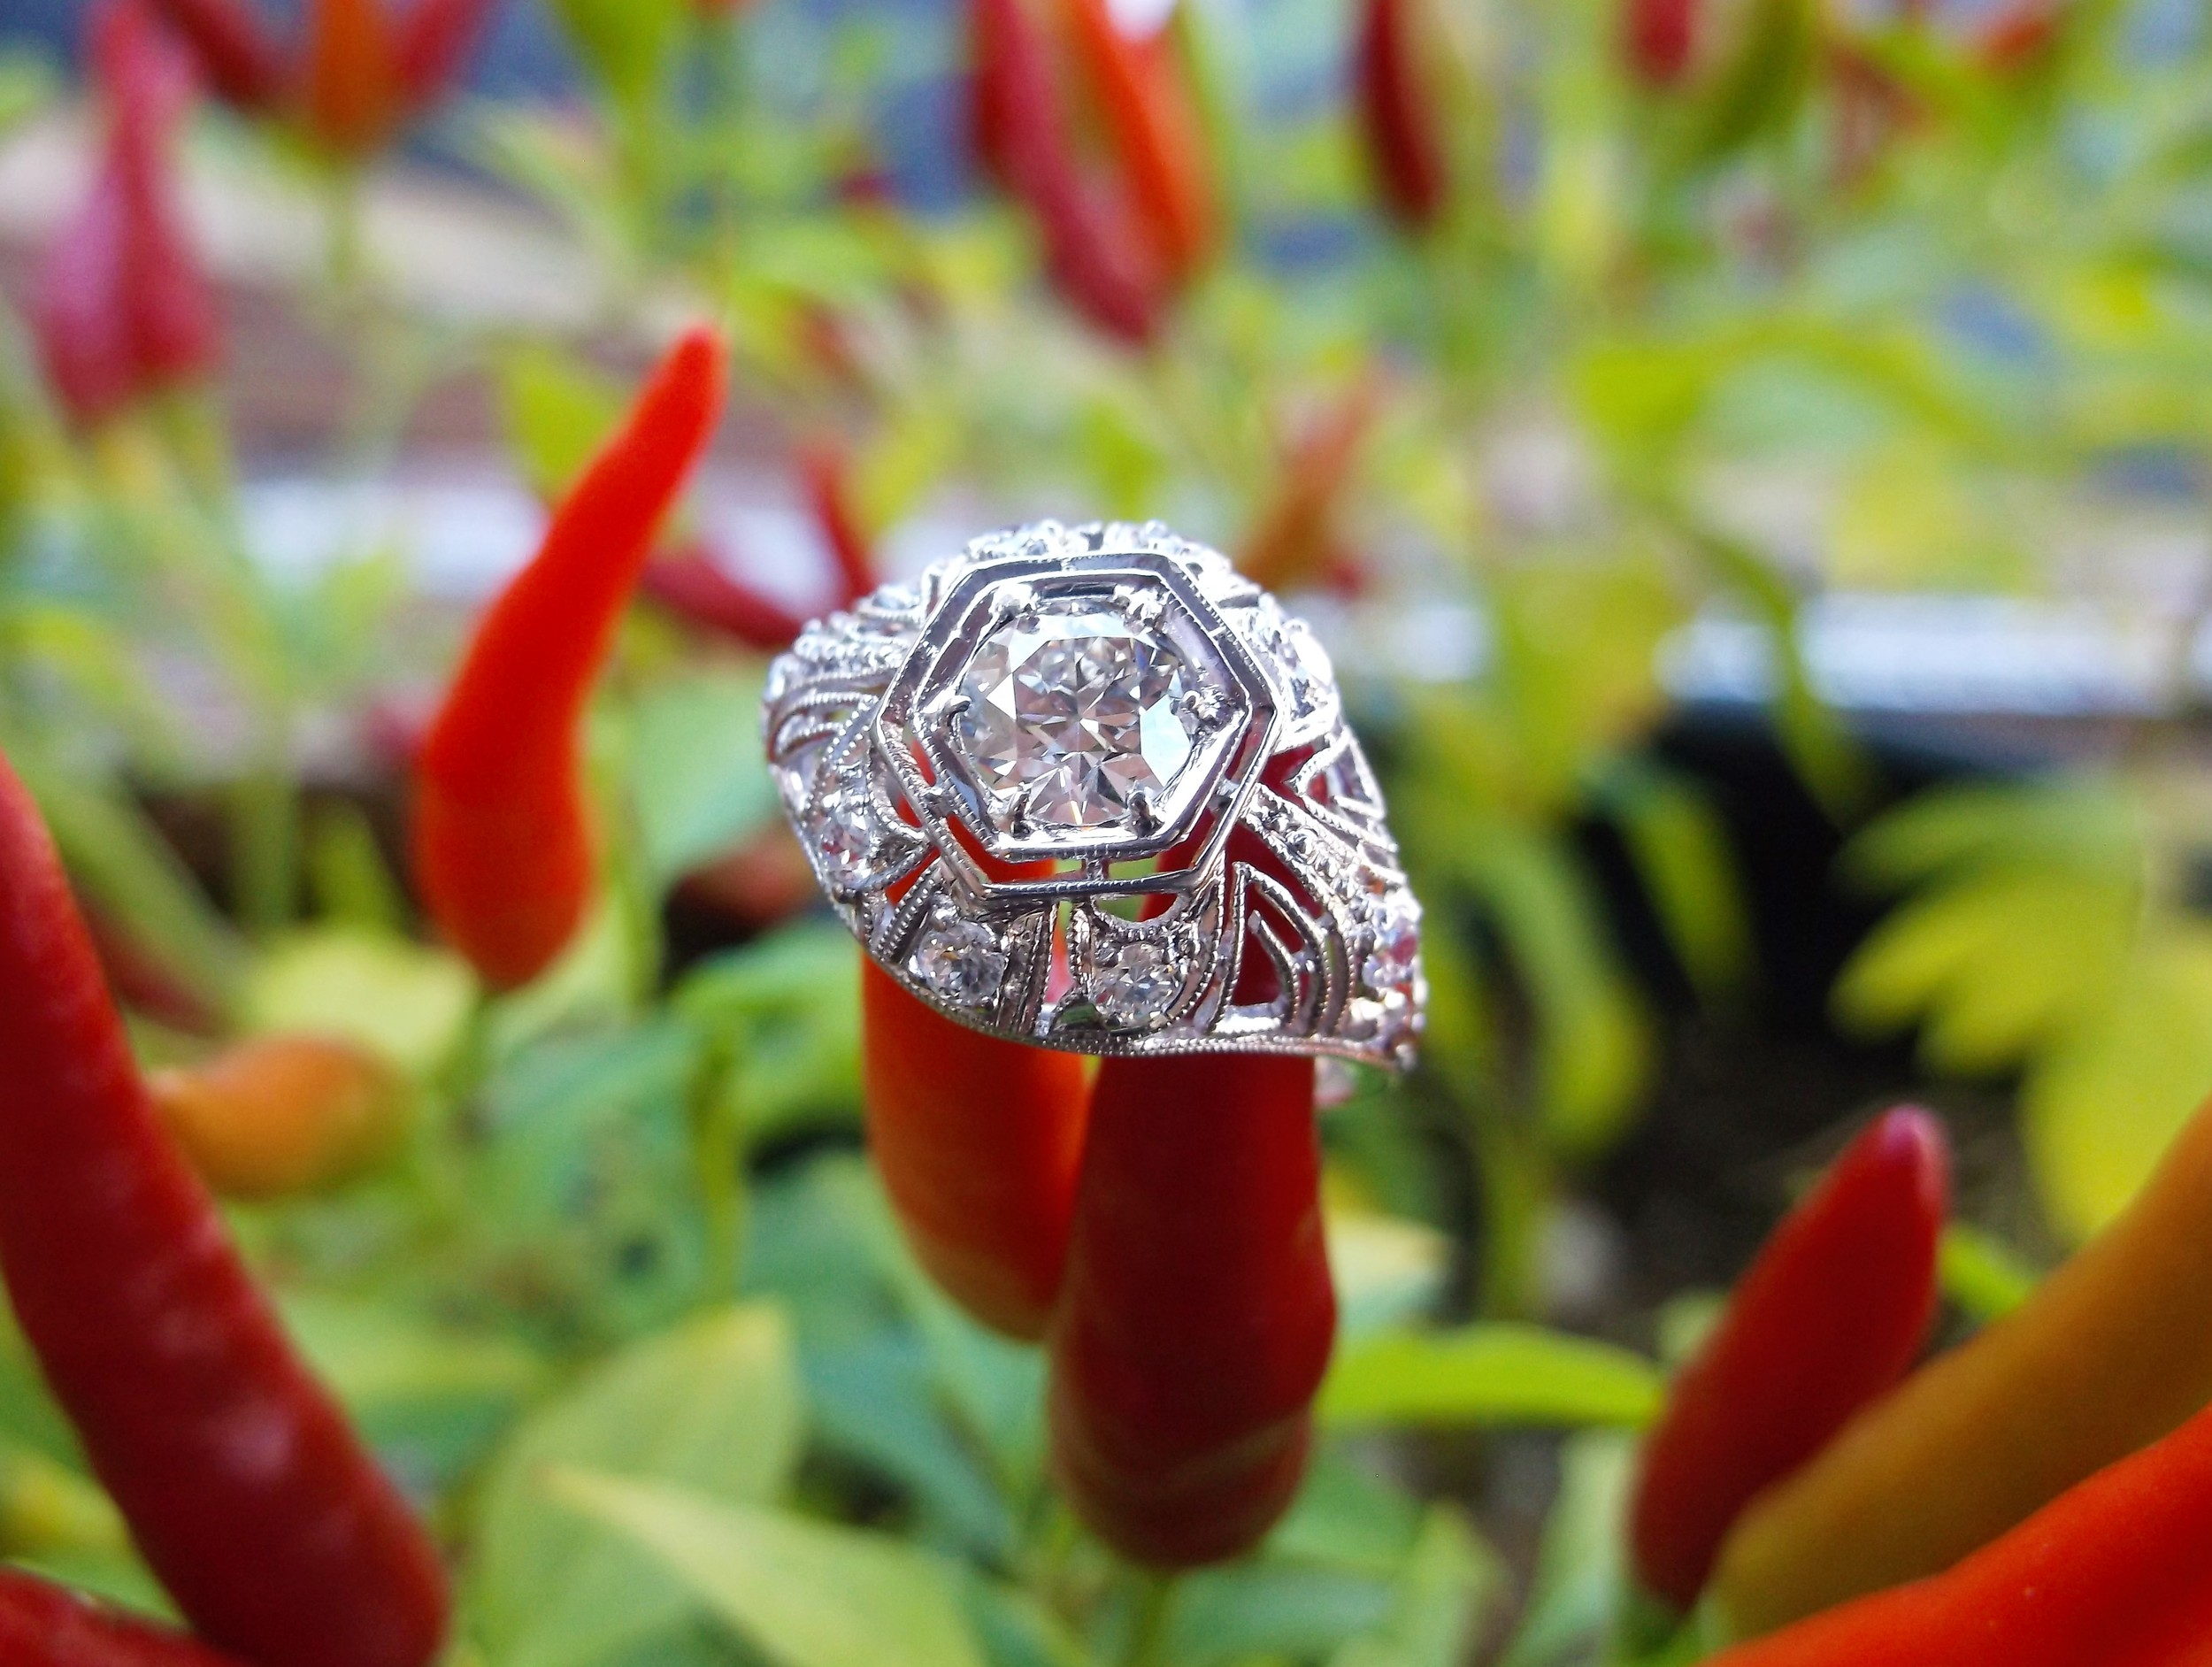 SOLD - Beautiful 1920's 0.47 carat Old European cut diamond set in a platinum and diamond detail mounting.